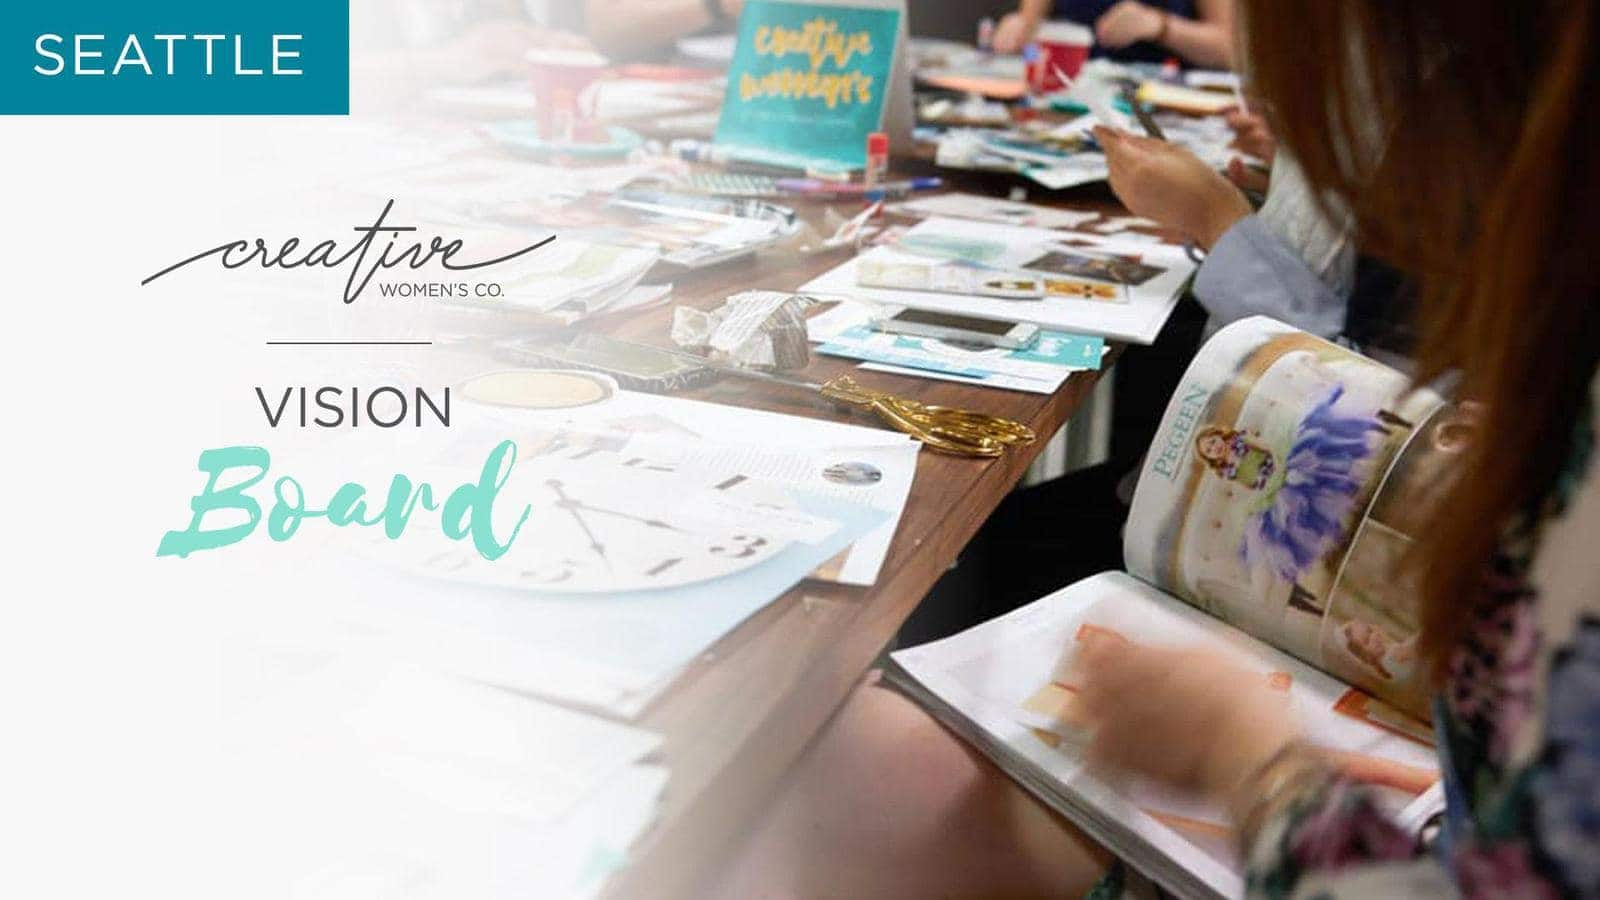 Seattle Cwc Brunch Craft Your Vision Board